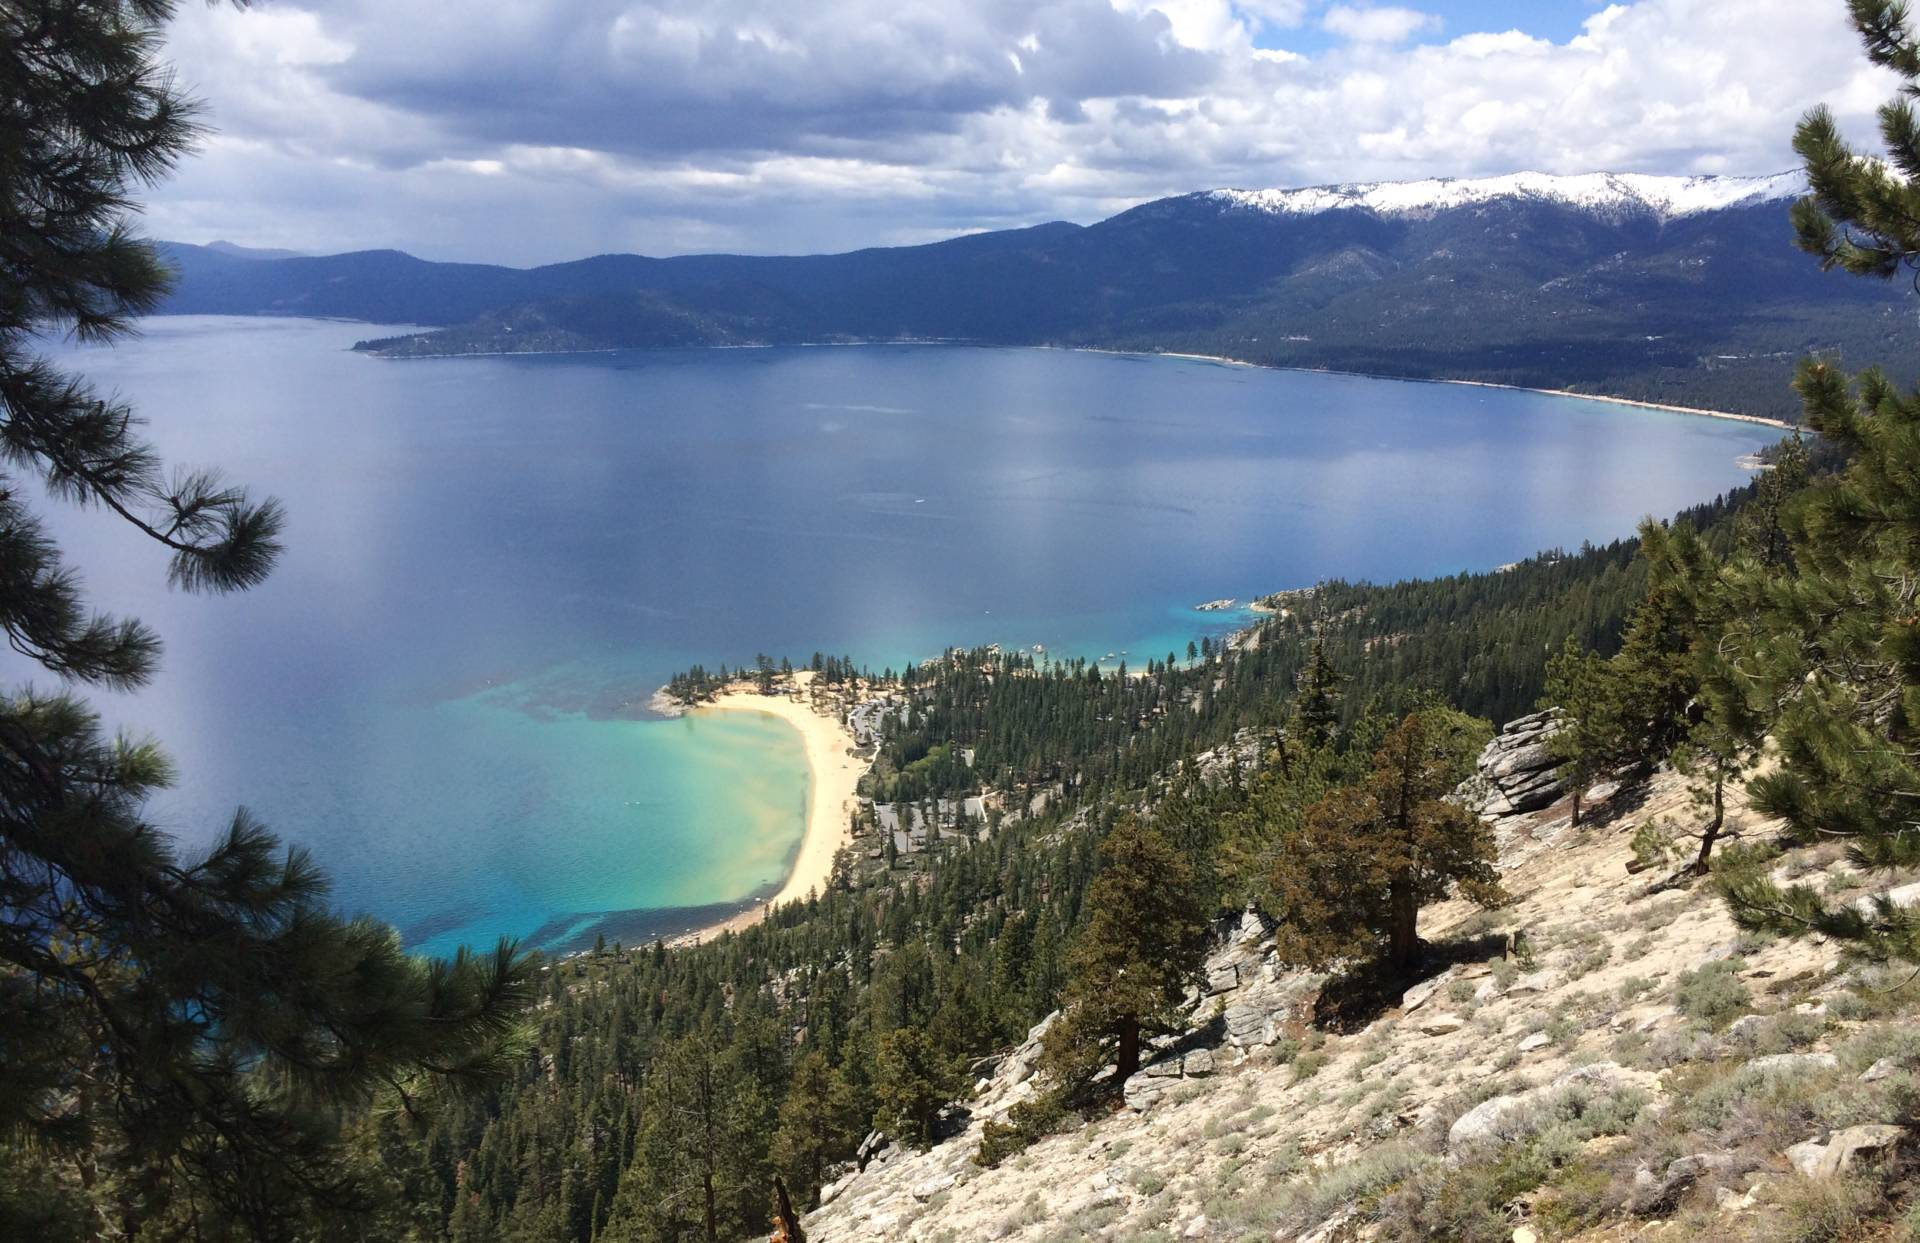 By late July 2017, the water temperature in Lake Tahoe had reached 68 degrees--5 degrees above average water temperature for this time of year. Lindsey Hoshaw